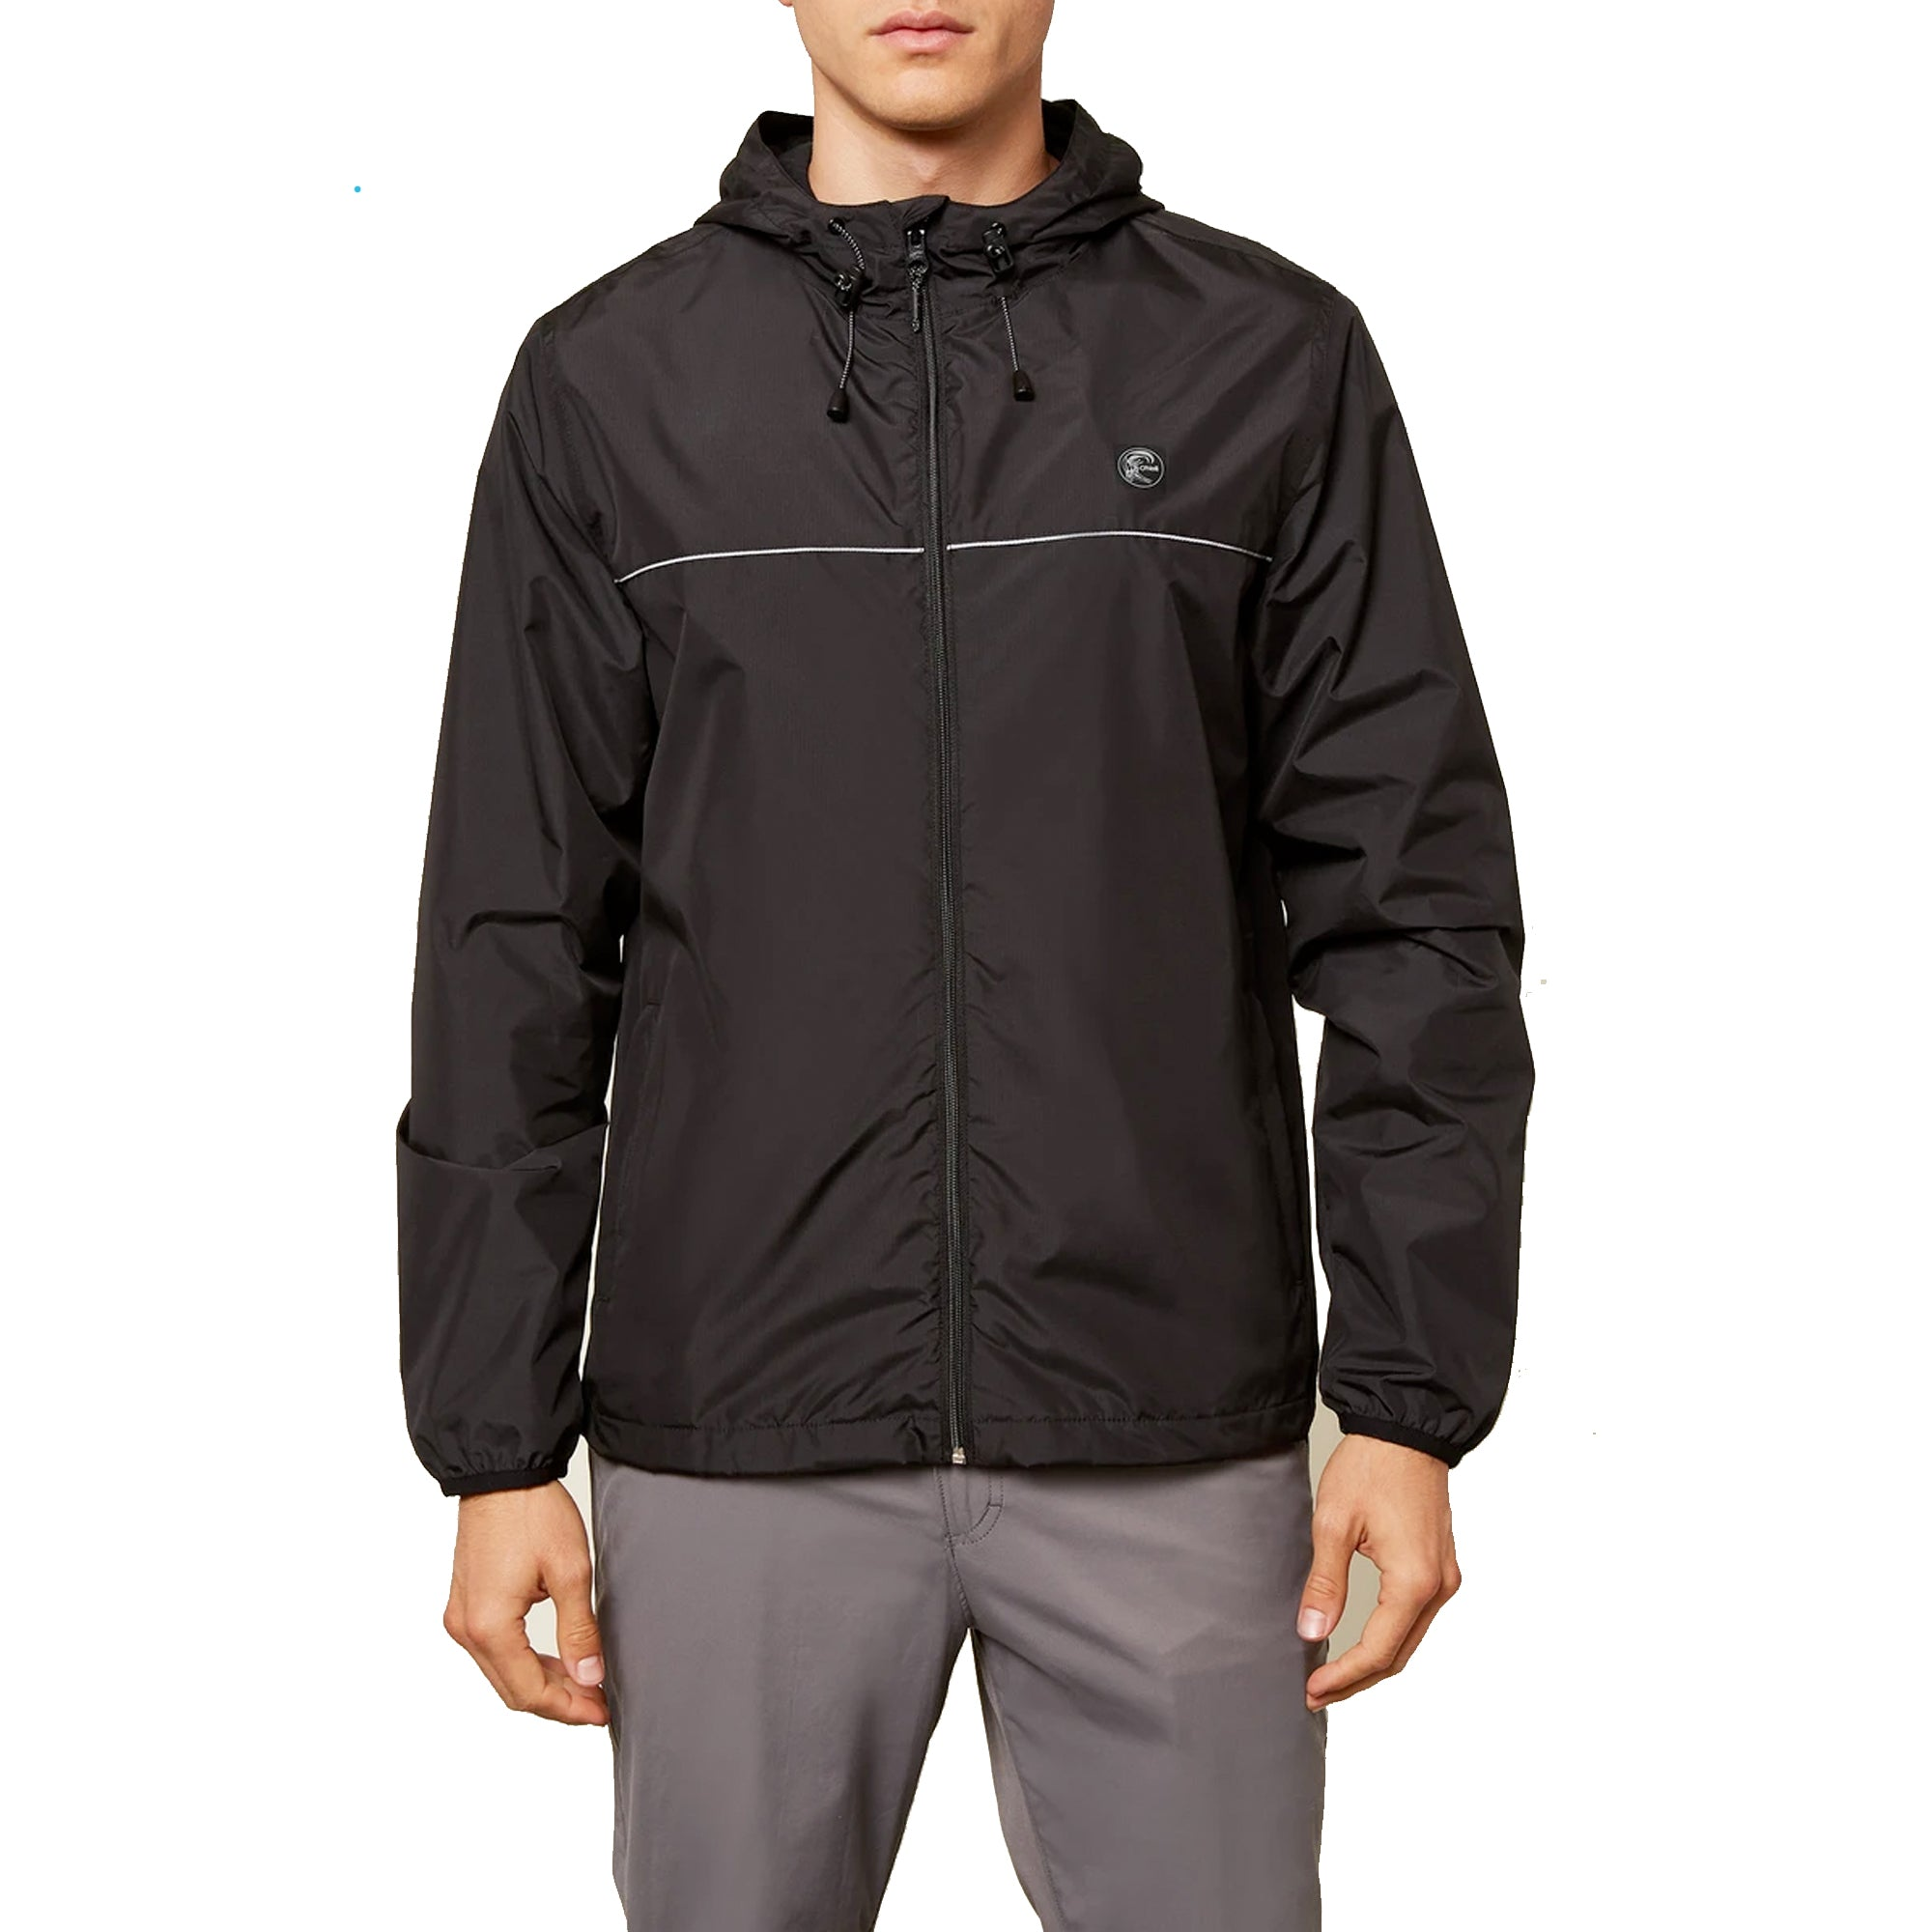 O'Neill Nomadic Men's Windbreaker Jacket